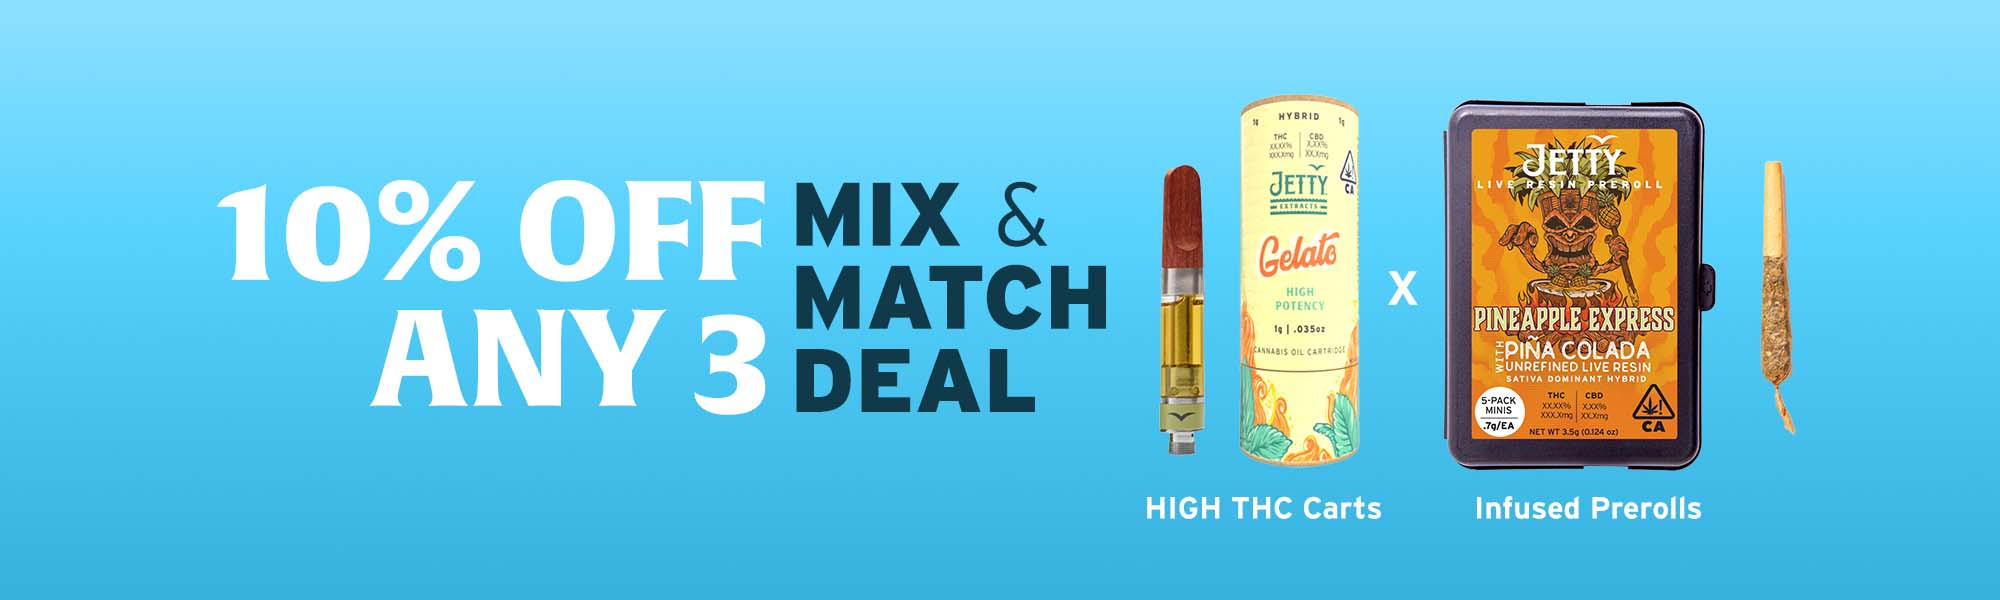 Mix and Match Deal - 10% Off Any 3